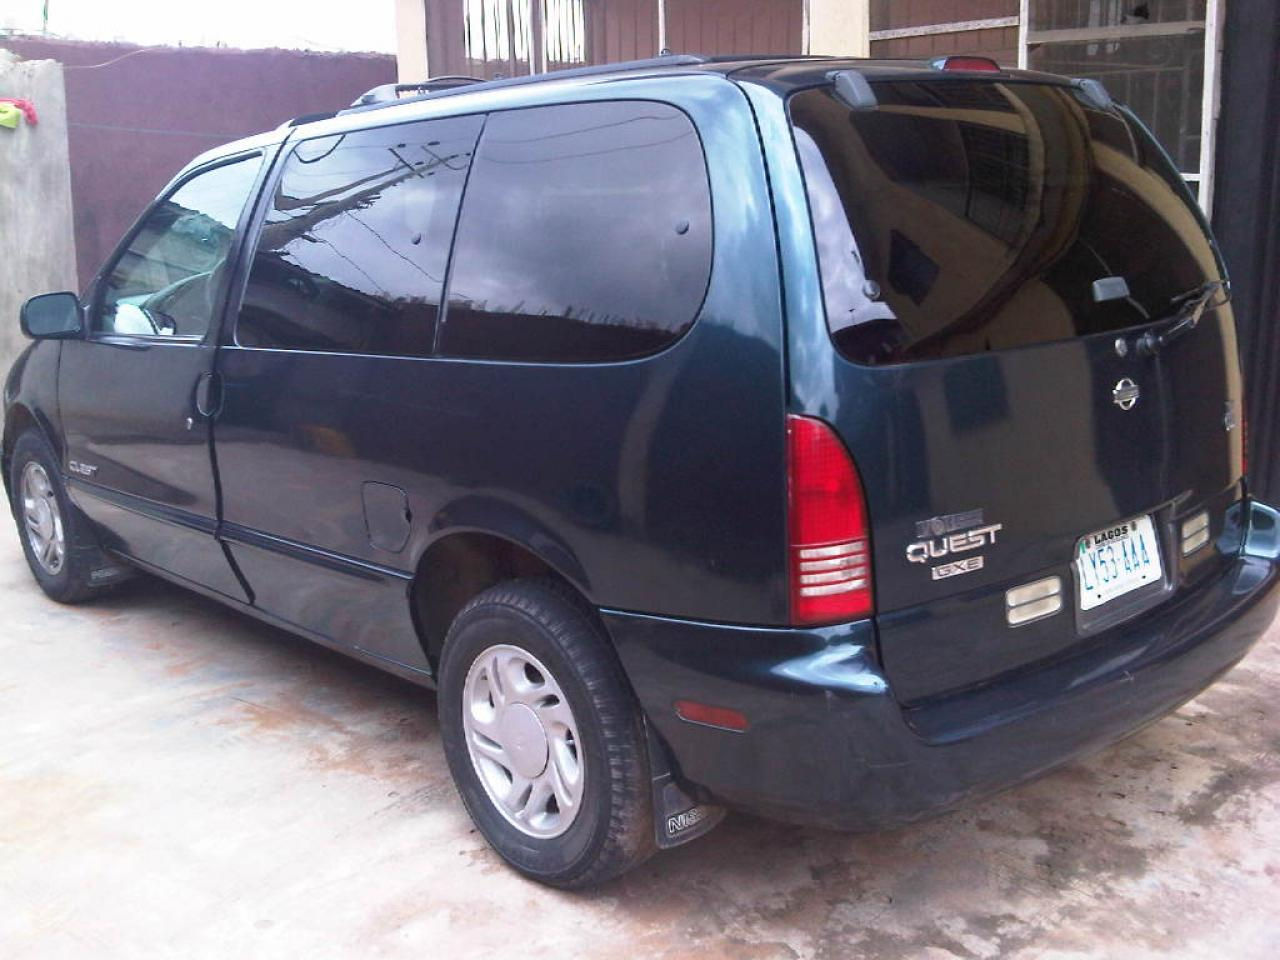 800 1024 1280 1600 origin 1997 Nissan Quest ...